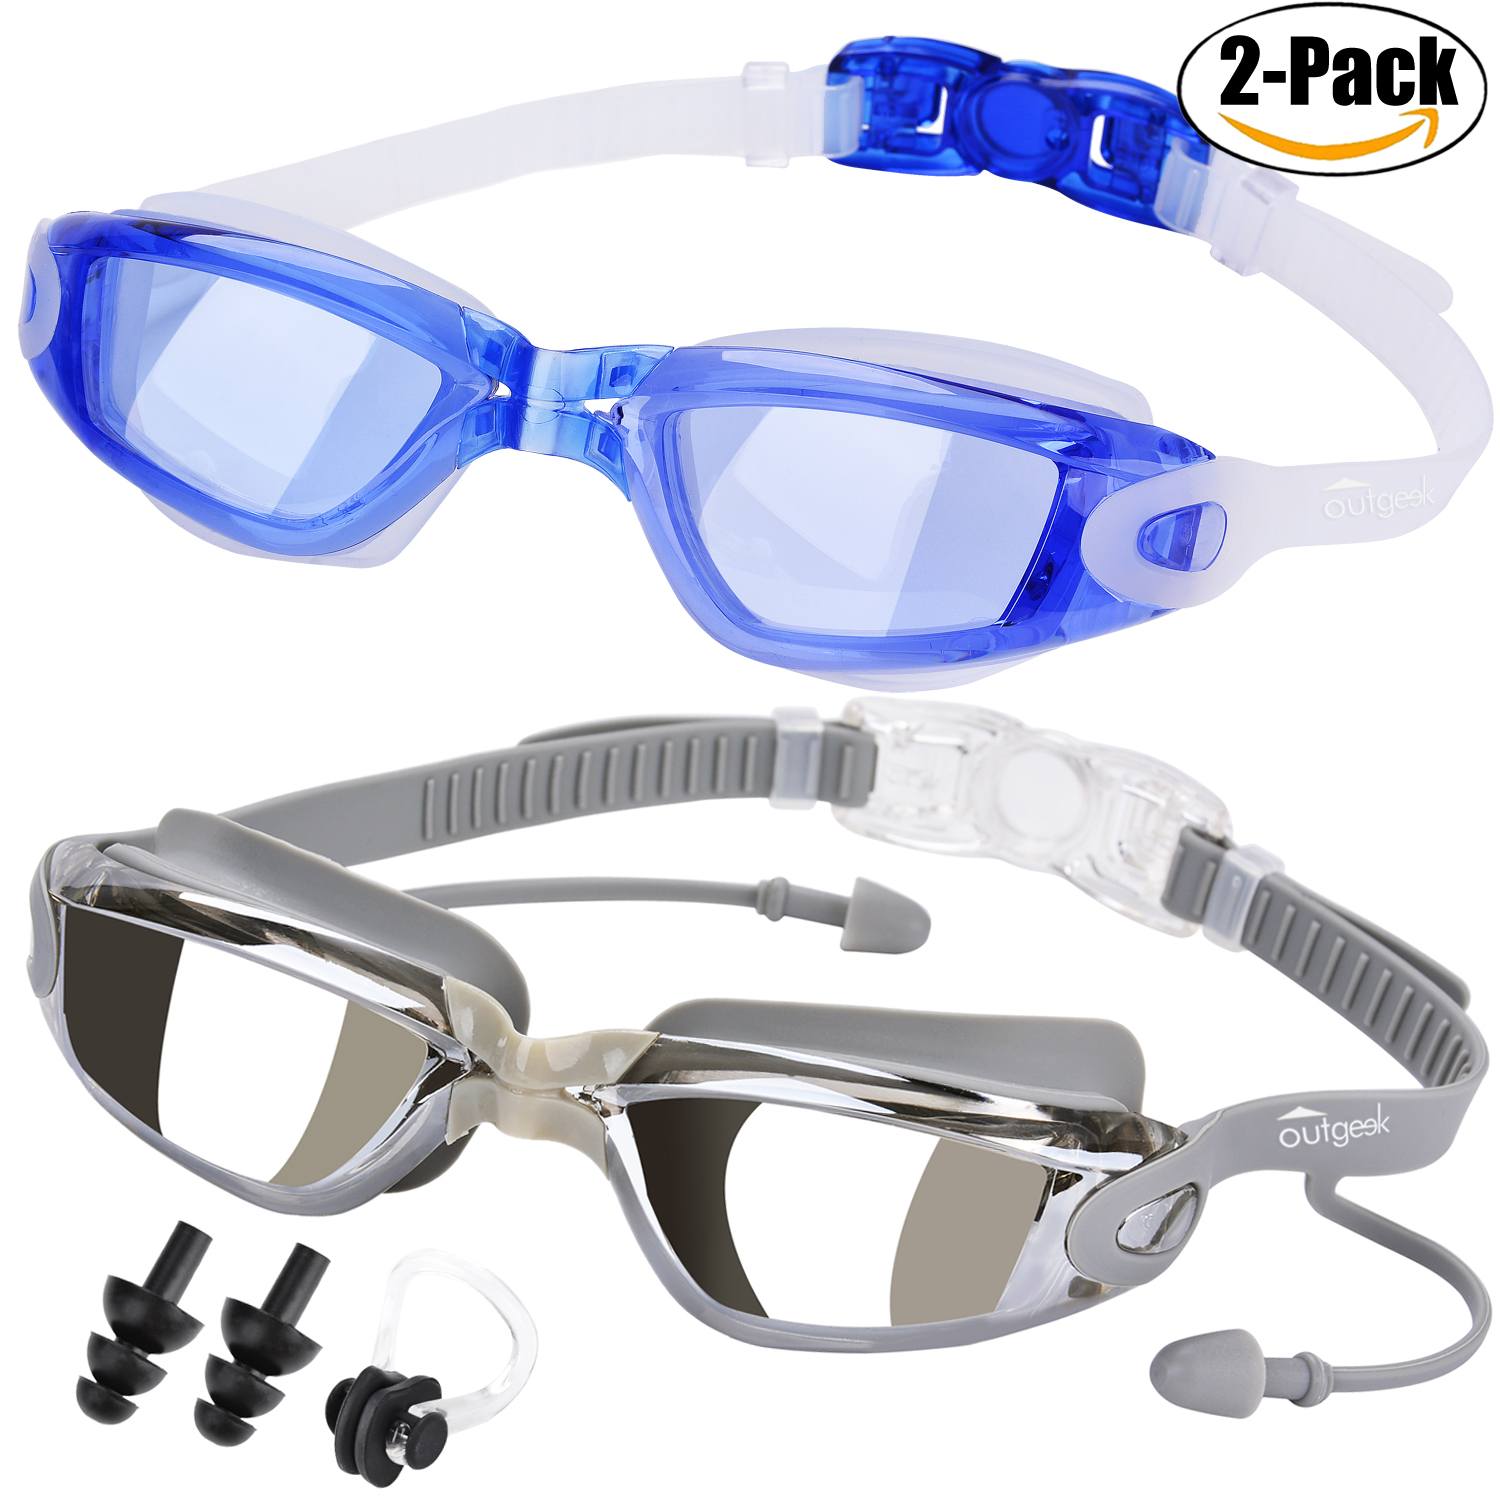 Swim Goggles, Outgeek 2-Pack of Swim Glasses with Anti-Fog UV Protection for Adult Men Women Youth Kids Child by Outgeek